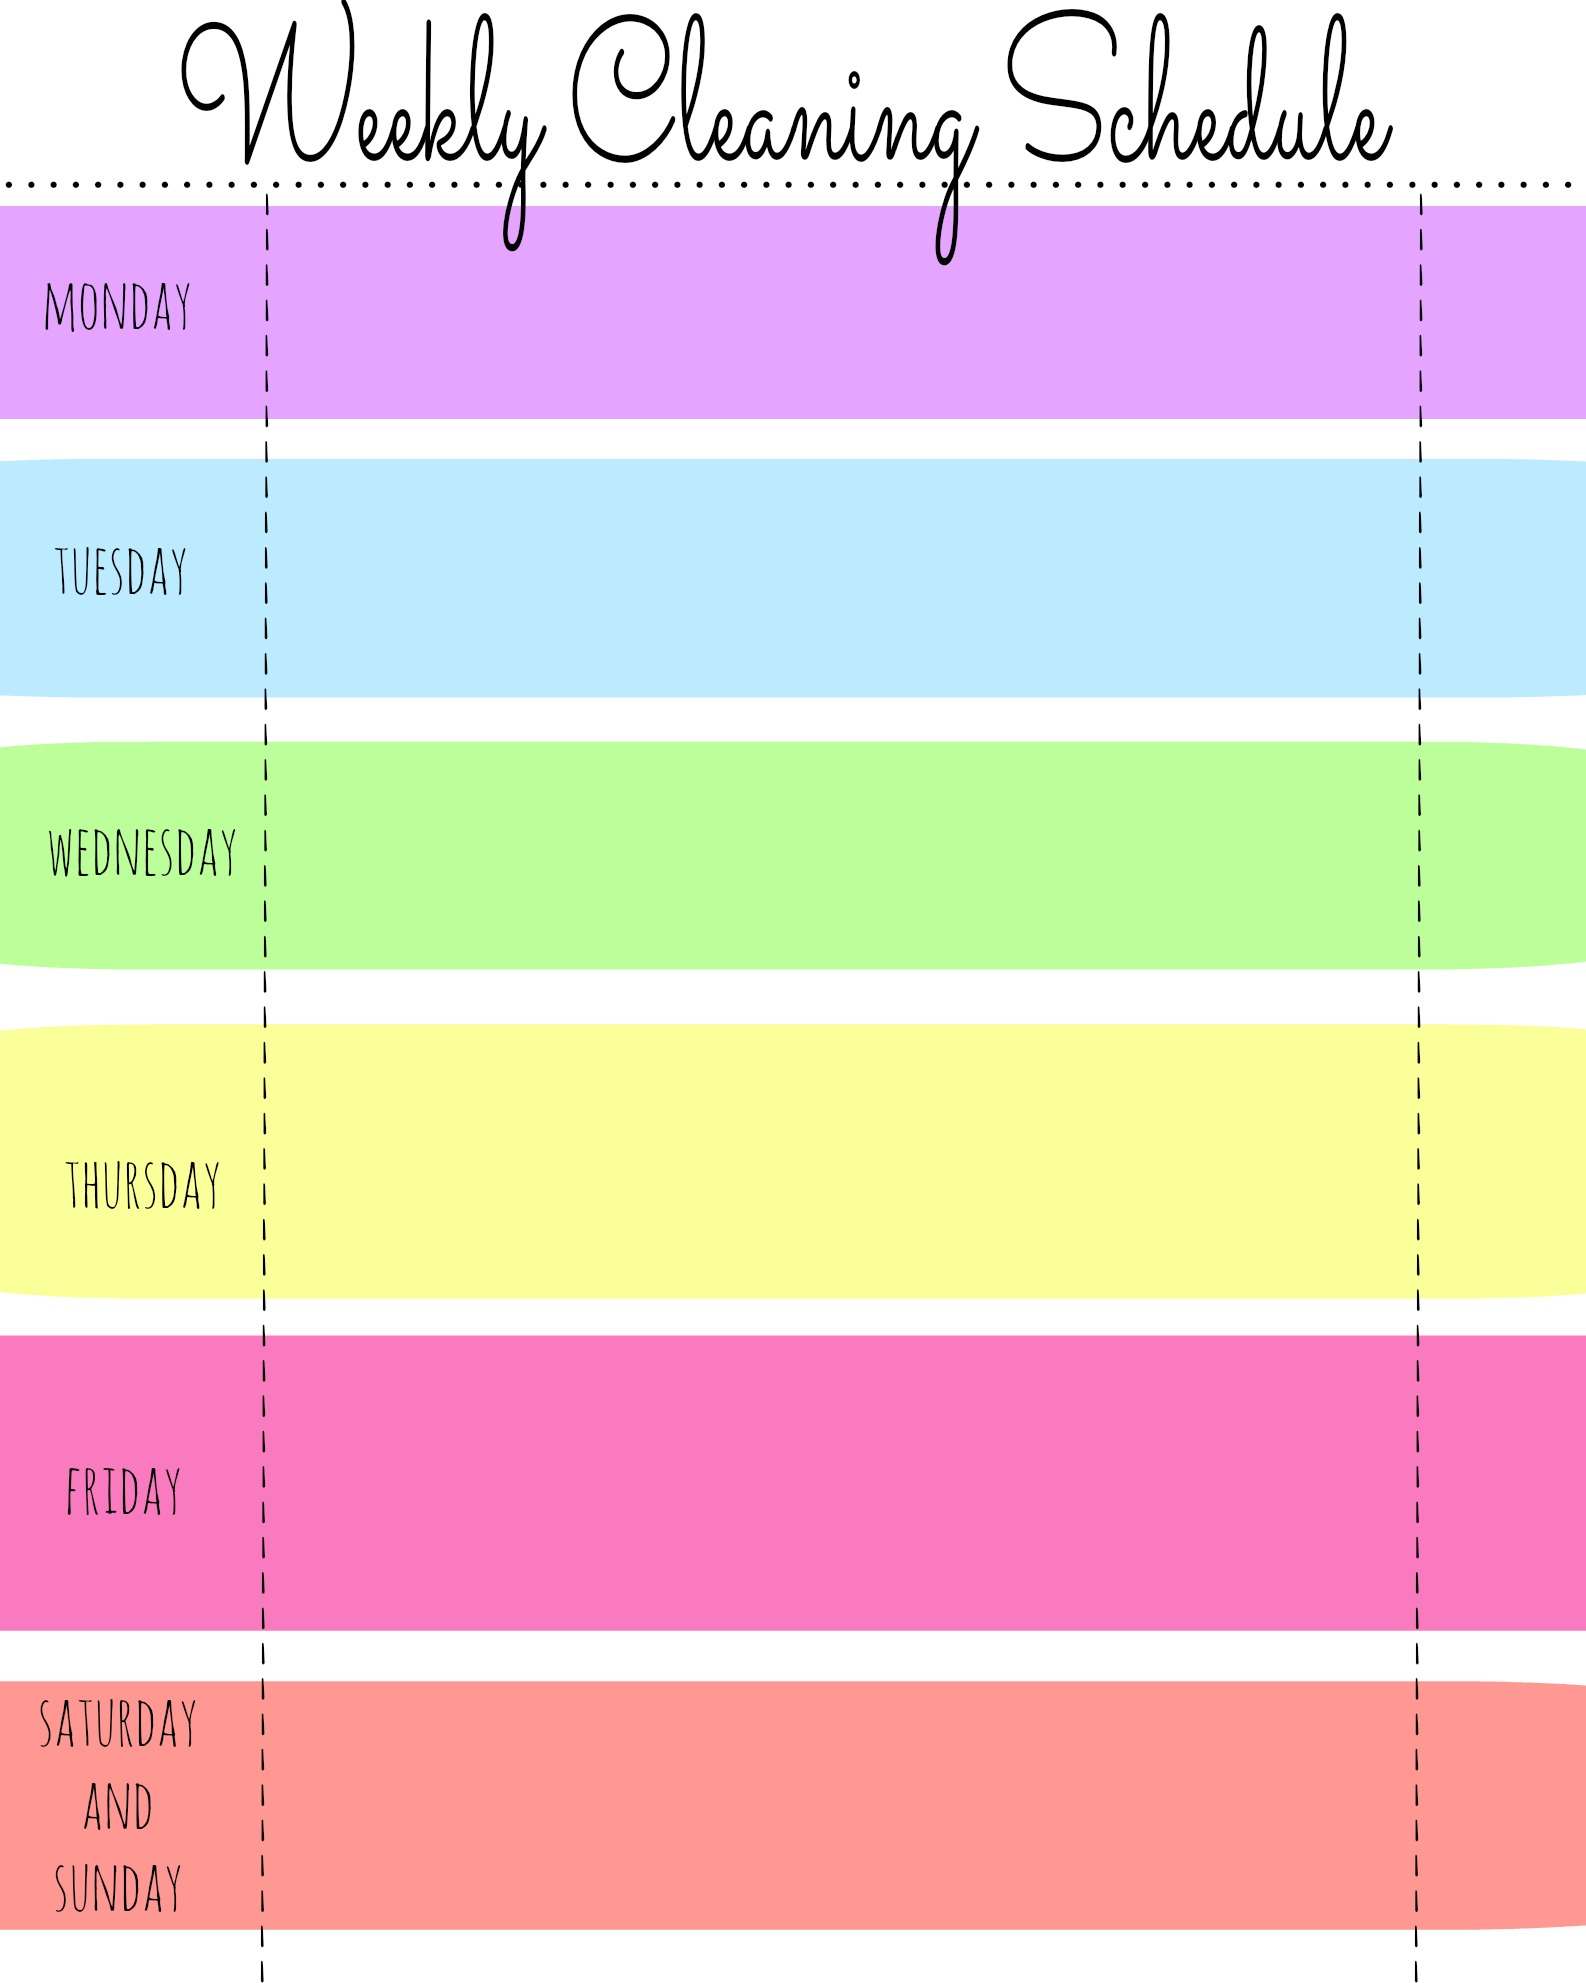 Calendar 2015 Printable with Time Slots